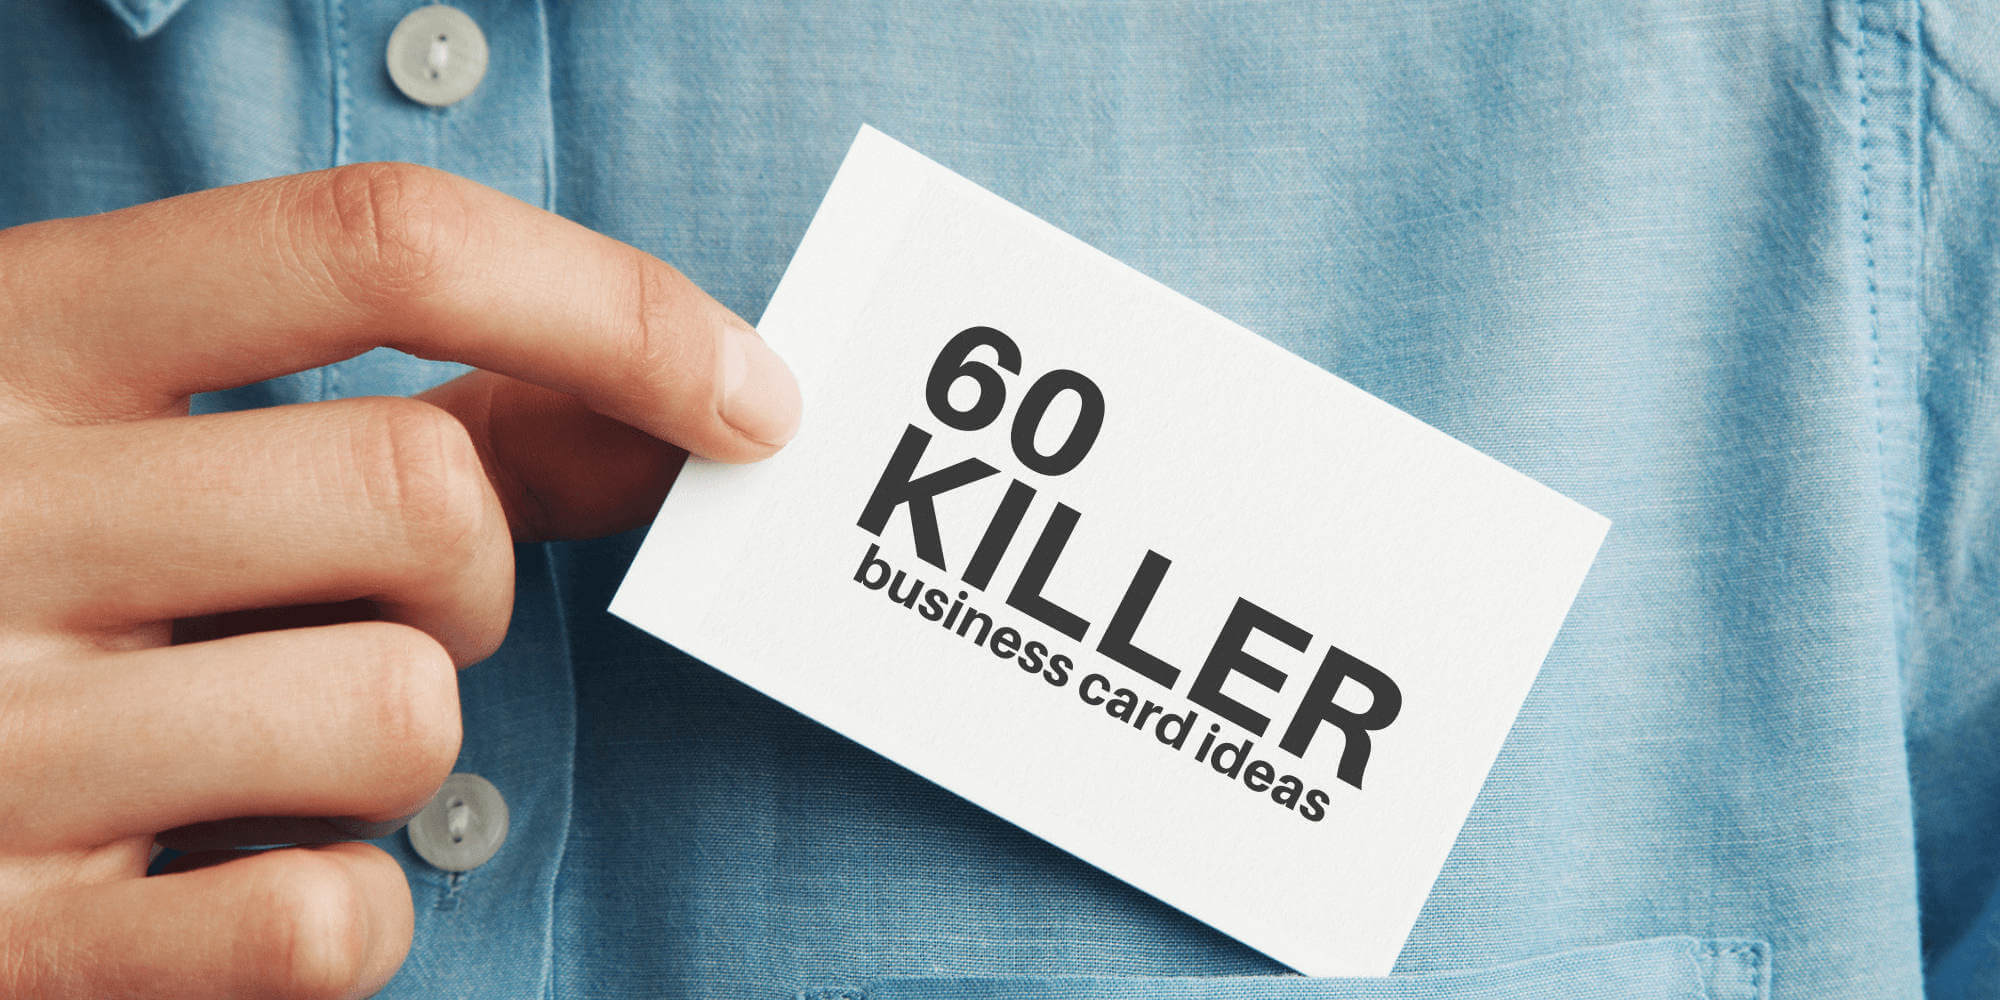 60 Modern Business Cards To Make A Killer First Impression In Qr Code Business Card Template